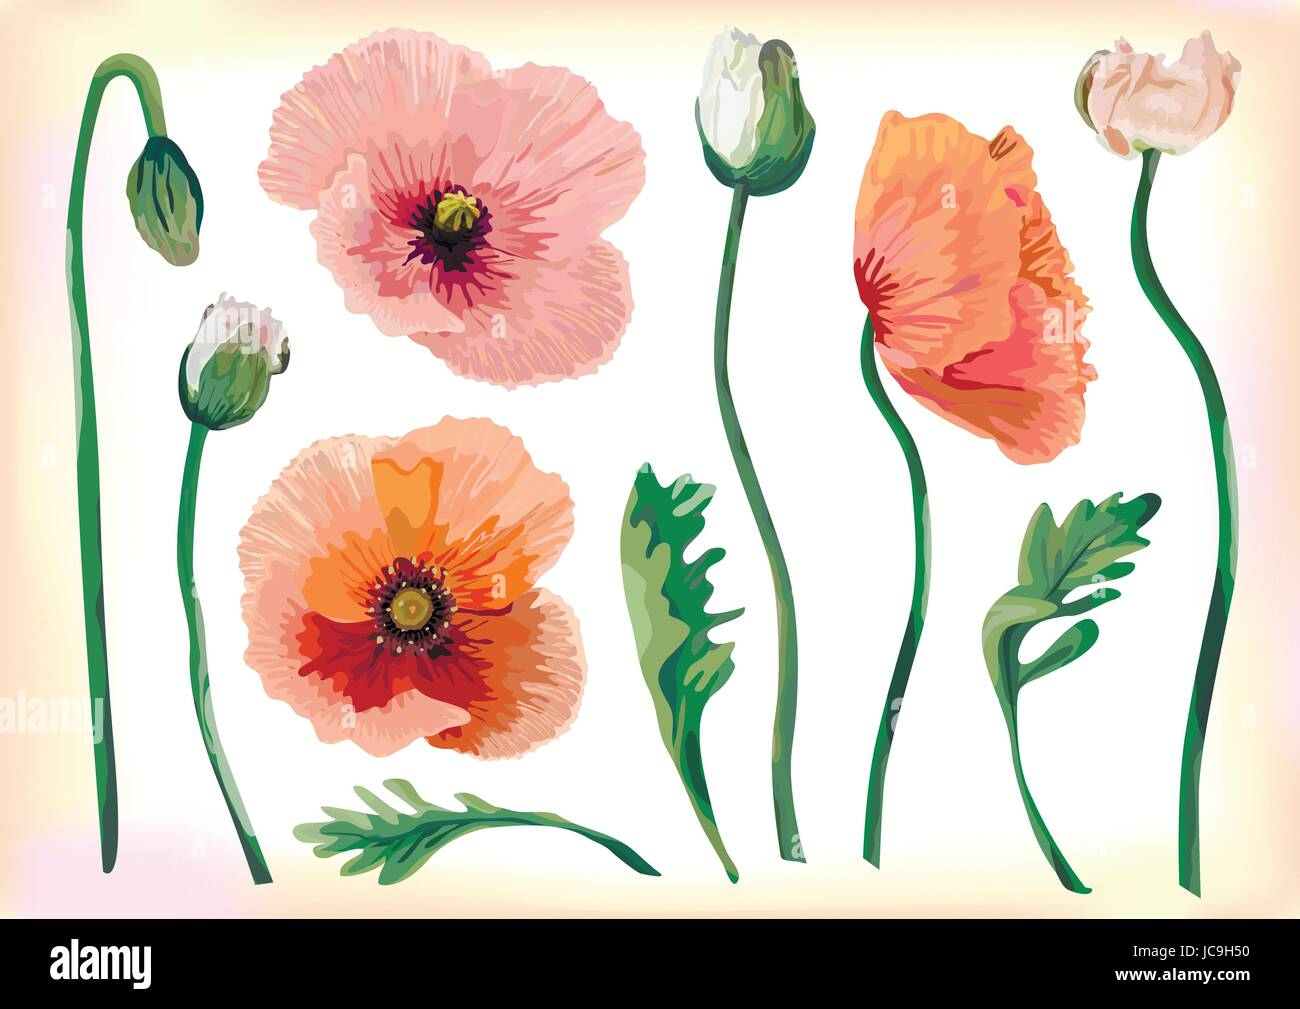 Poppy flower watercolor stock photos poppy flower watercolor stock vintage poppy beautiful soft flowers peach red pink buttons leaves botanical pastel blooming floral fine spring mightylinksfo